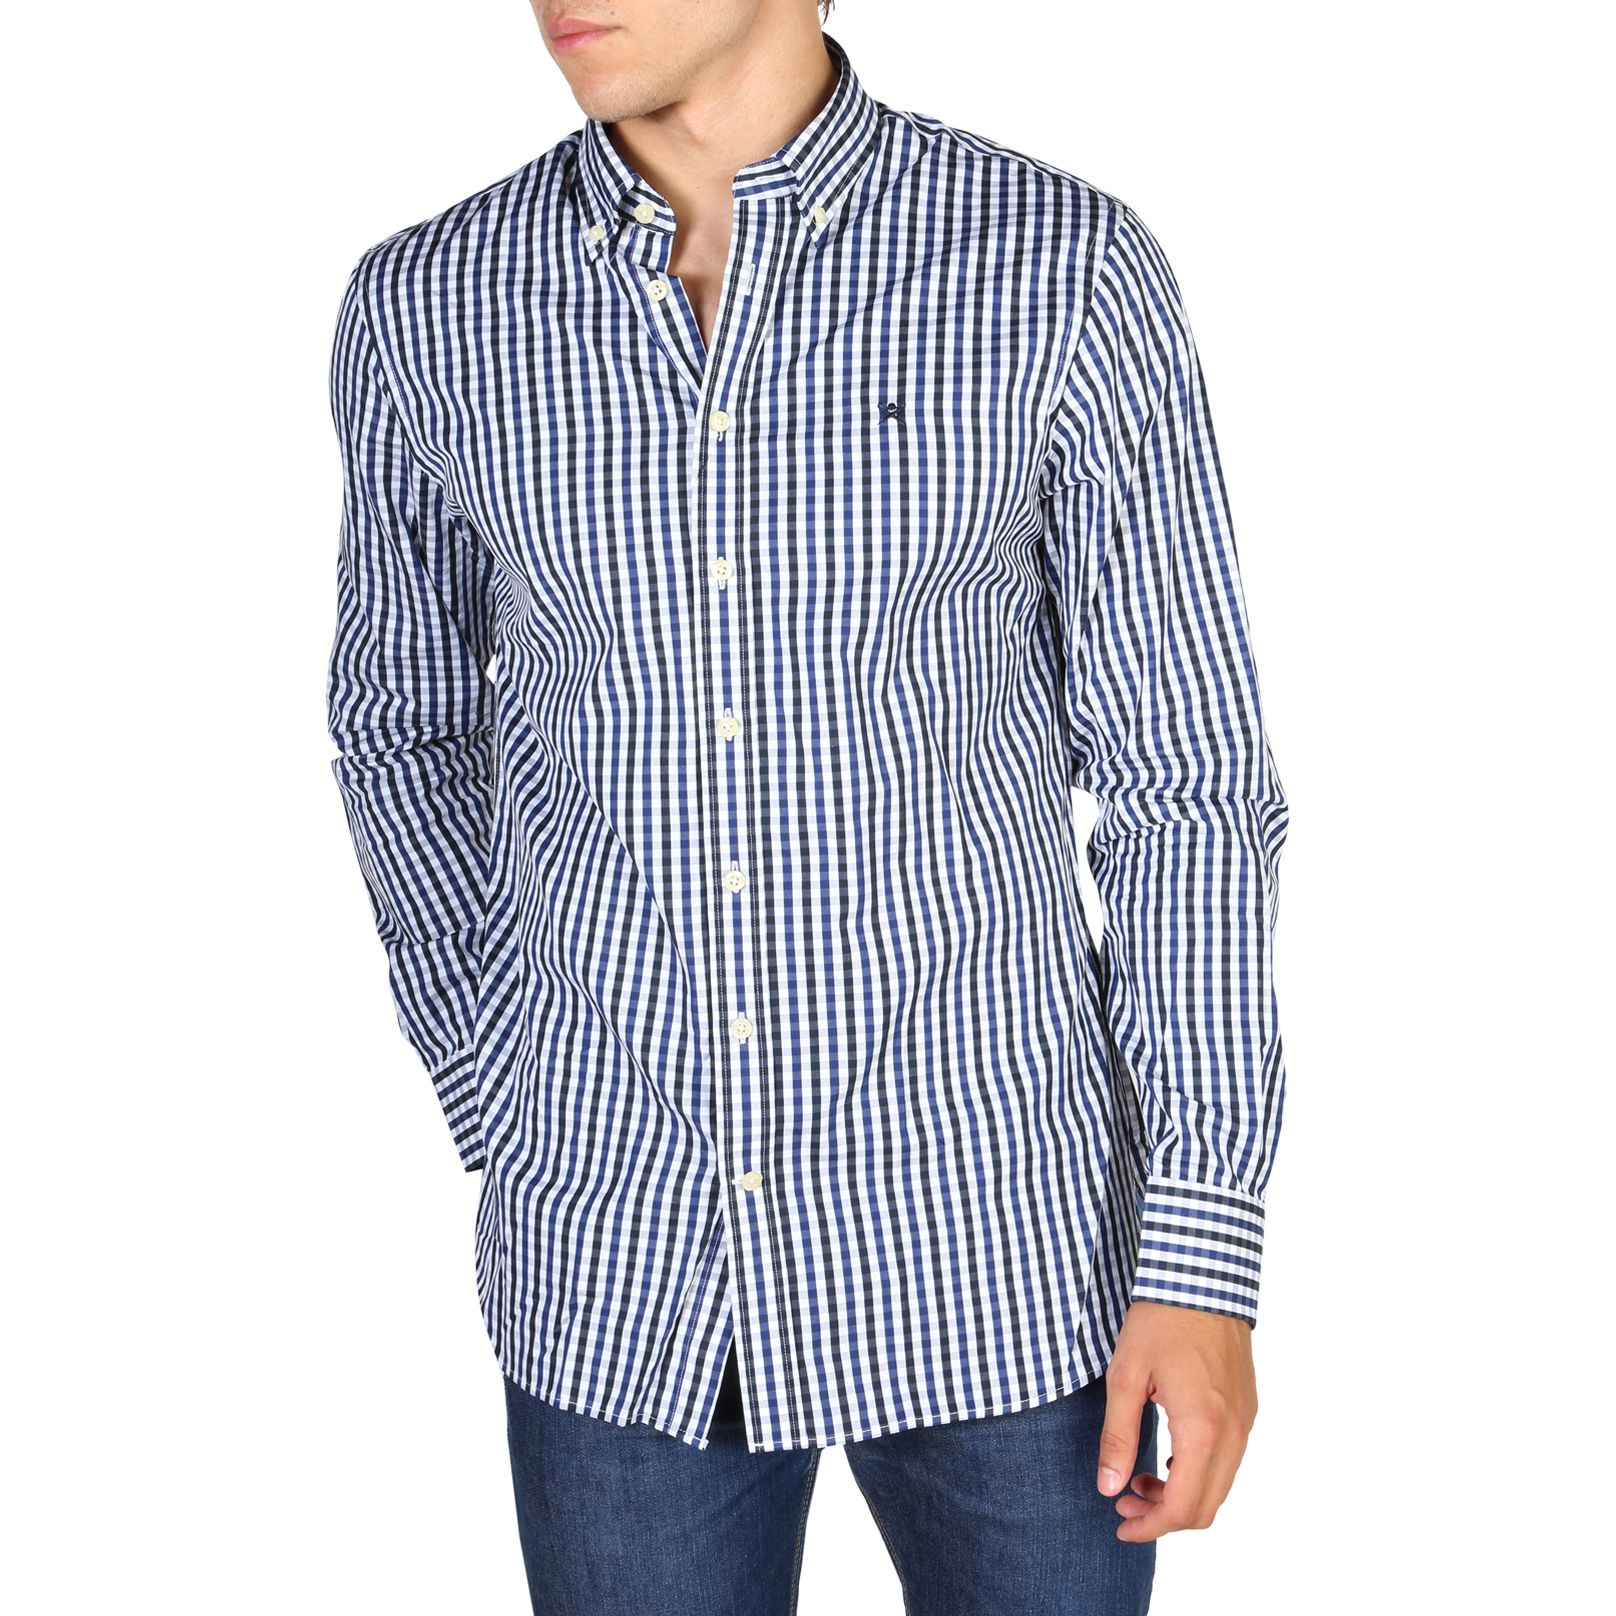 Hackett - HM305379 | You Fashion Outlet